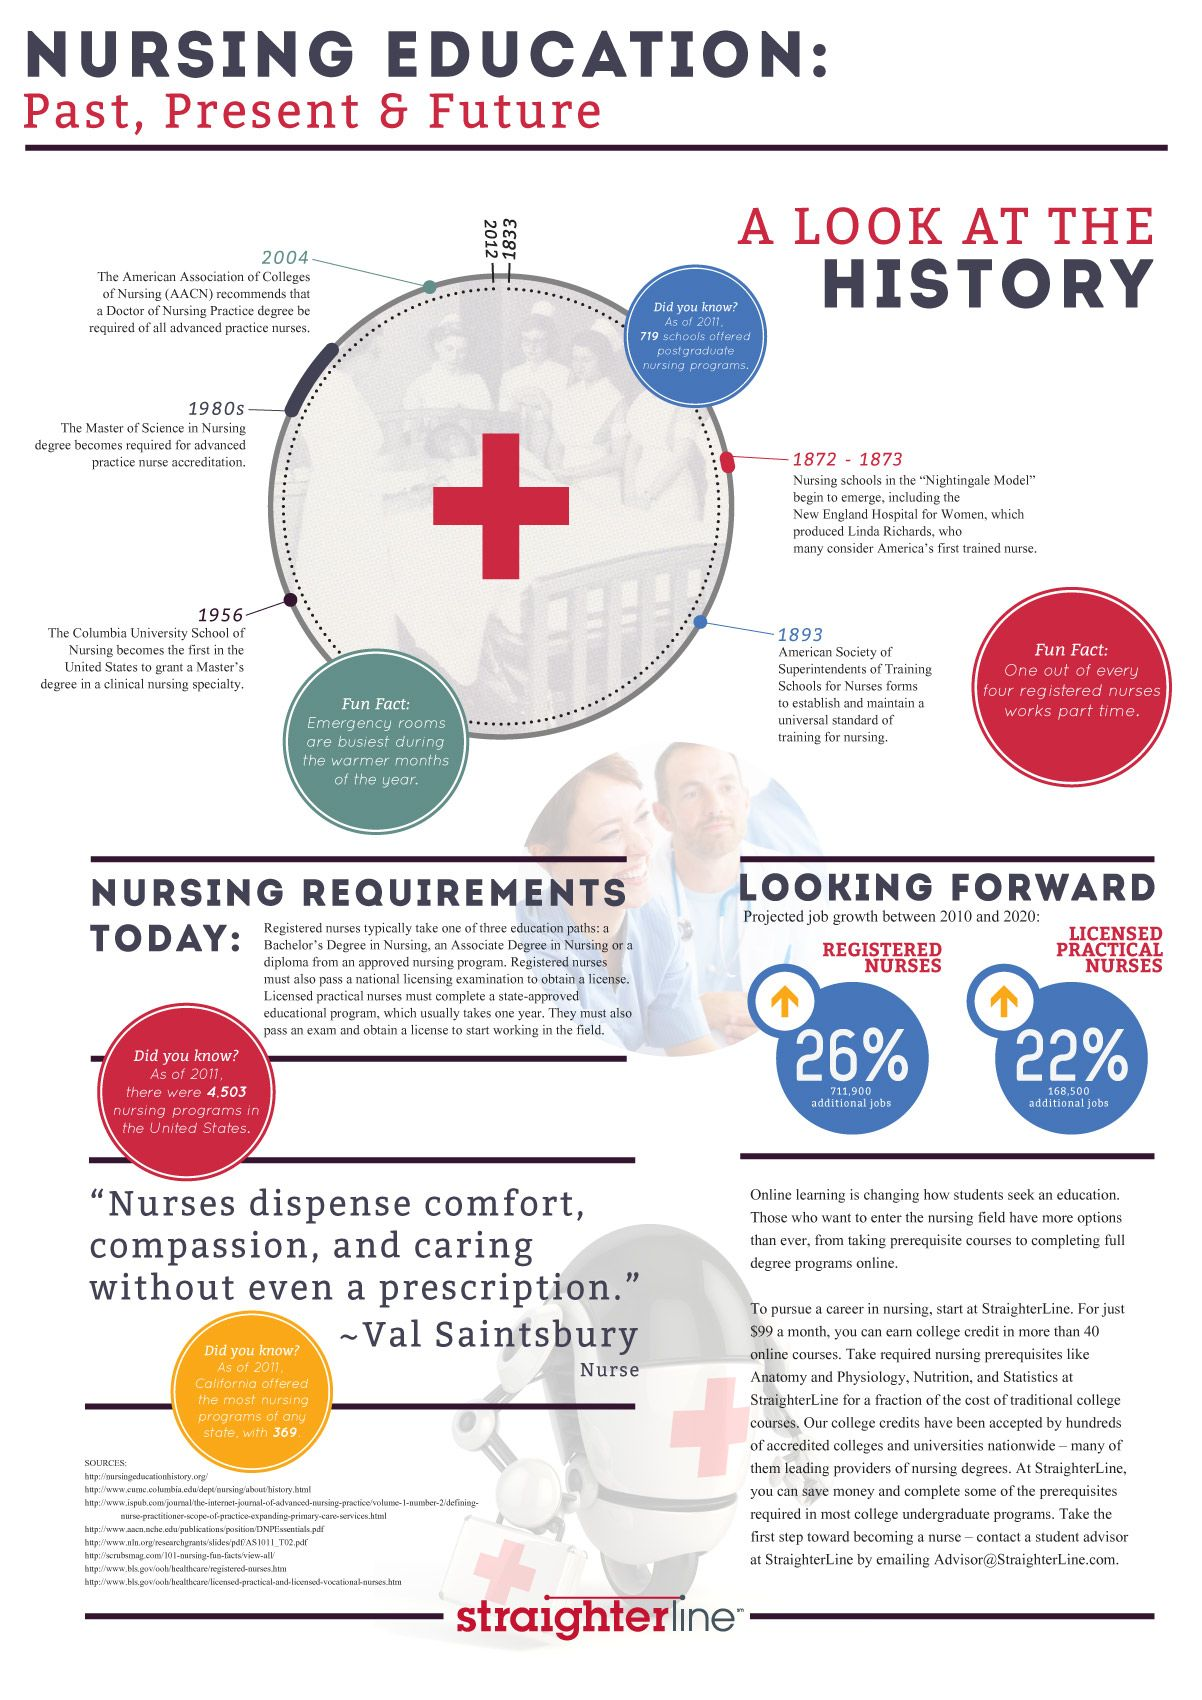 infographic how to get an education in nursing how to become a want to become a nurse this infographic shows where the nursing industry has been and where it s going get the right degree for today s nursing careers